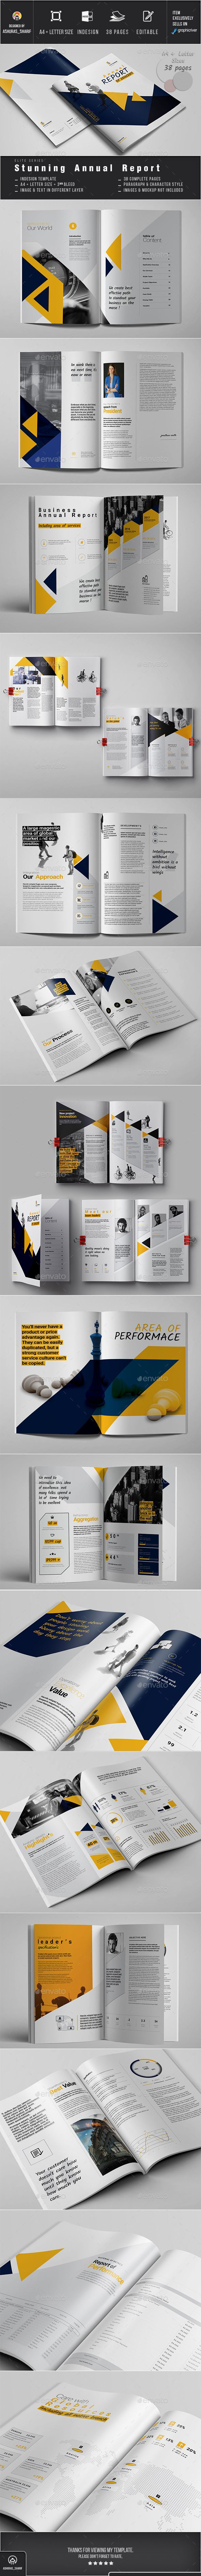 #Annual Report - Corporate #Brochures Download here: https://graphicriver.net/item/annual-report/18756570?ref=alena994